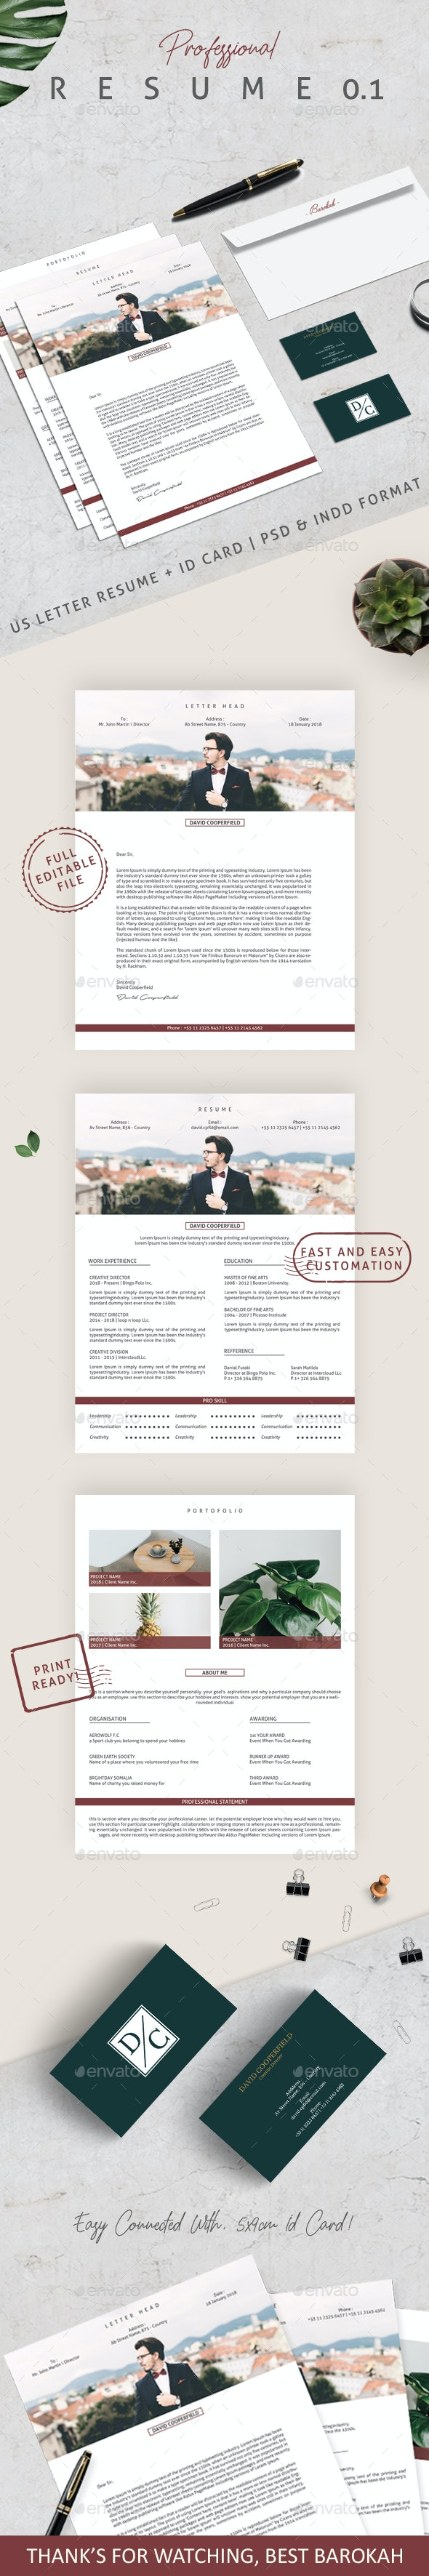 Professional Resume 01 - Resumes Stationery